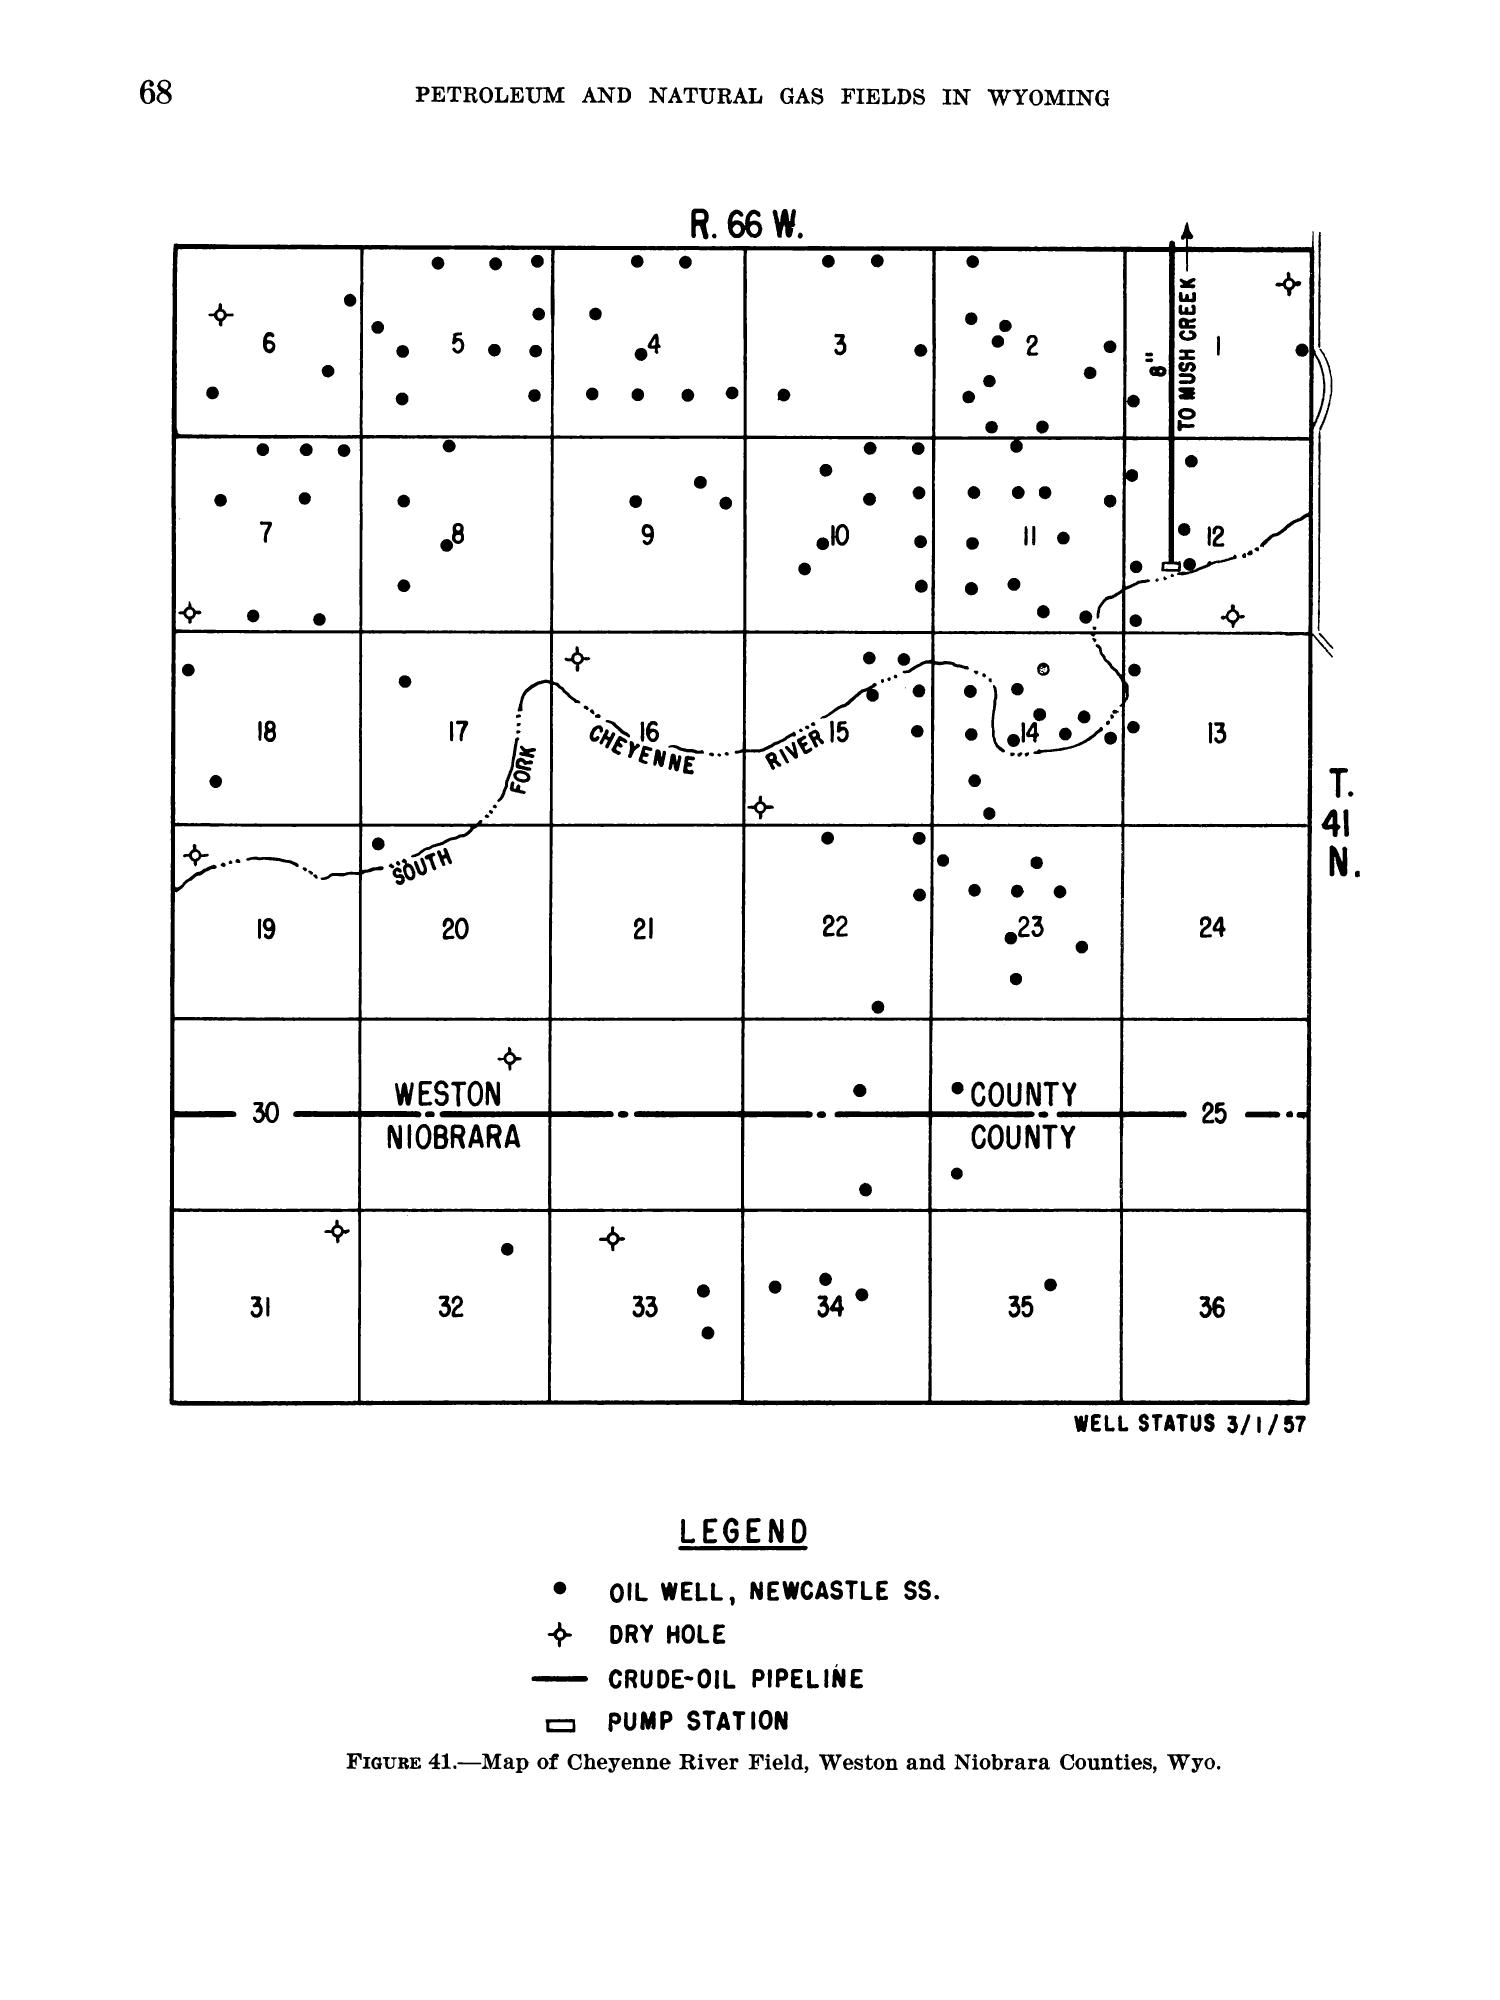 Petroleum and Natural Gas Fields in Wyoming                                                                                                      68